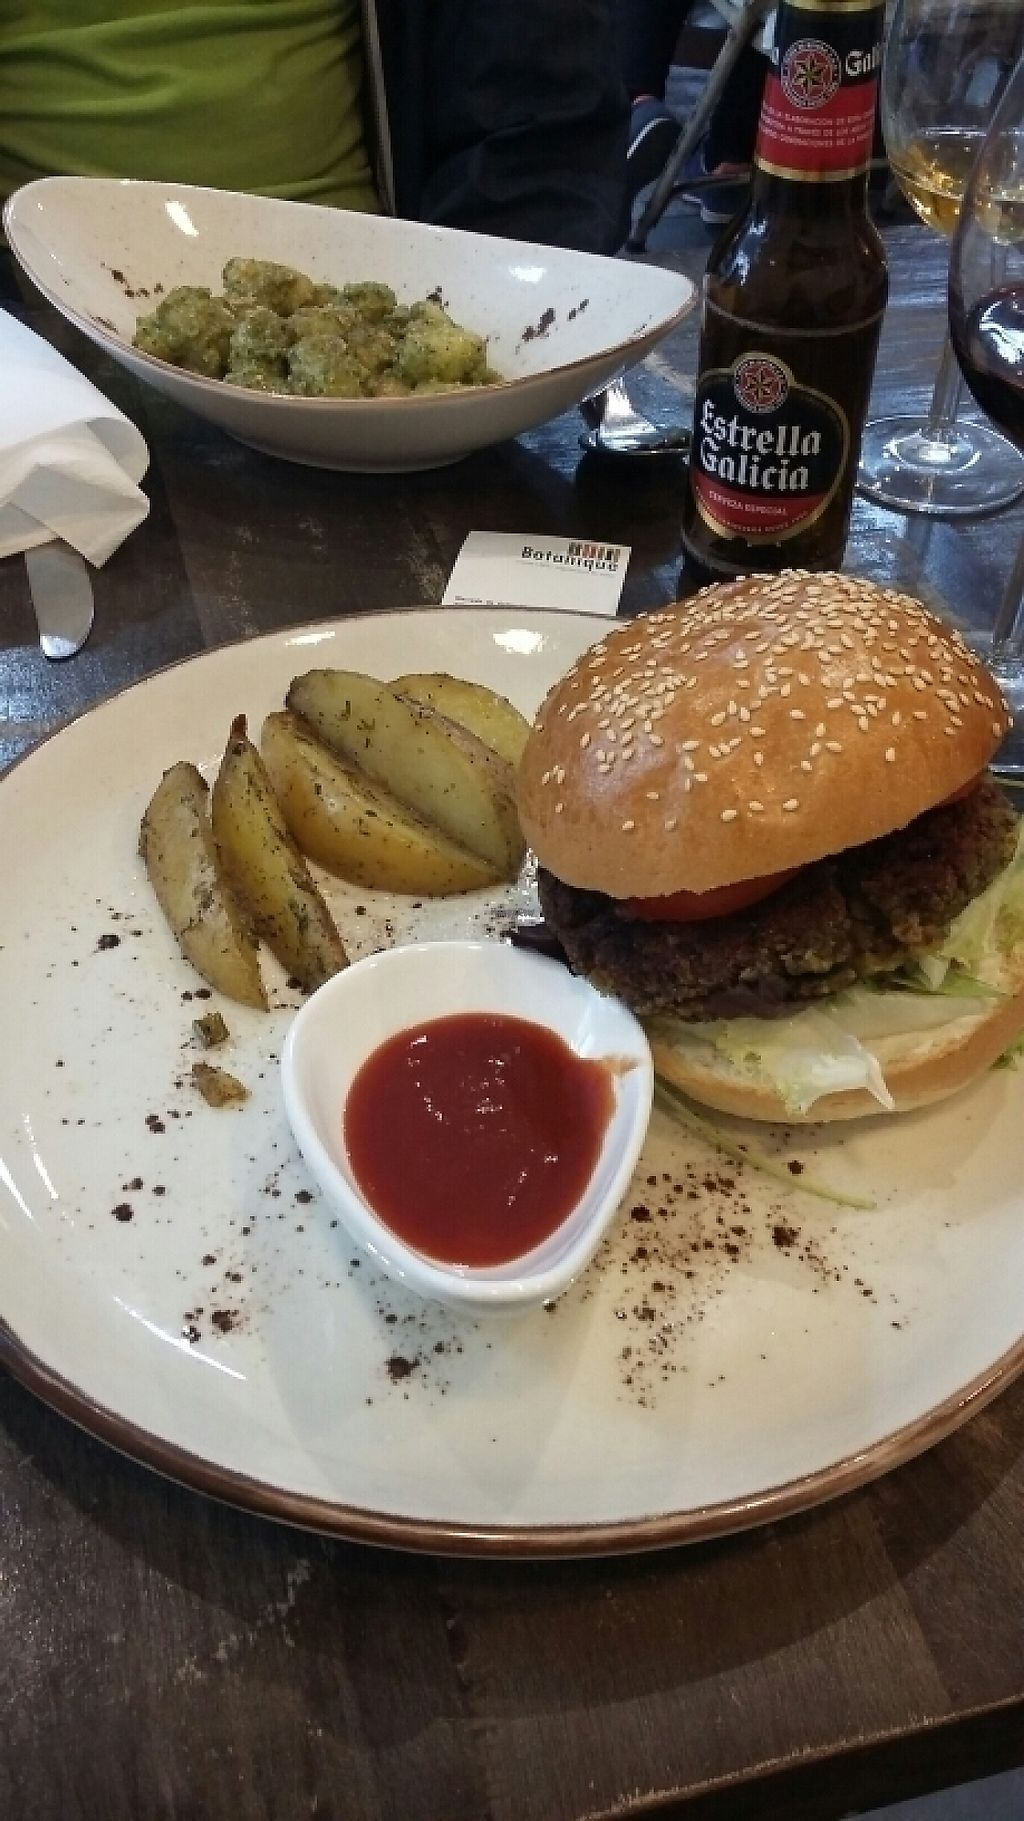 """Photo of CLOSED: Botanique  by <a href=""""/members/profile/Vegan-Vinyl-Avengers"""">Vegan-Vinyl-Avengers</a> <br/>Chickpea burger and gnocchi ♡ <br/> April 4, 2017  - <a href='/contact/abuse/image/58150/244675'>Report</a>"""